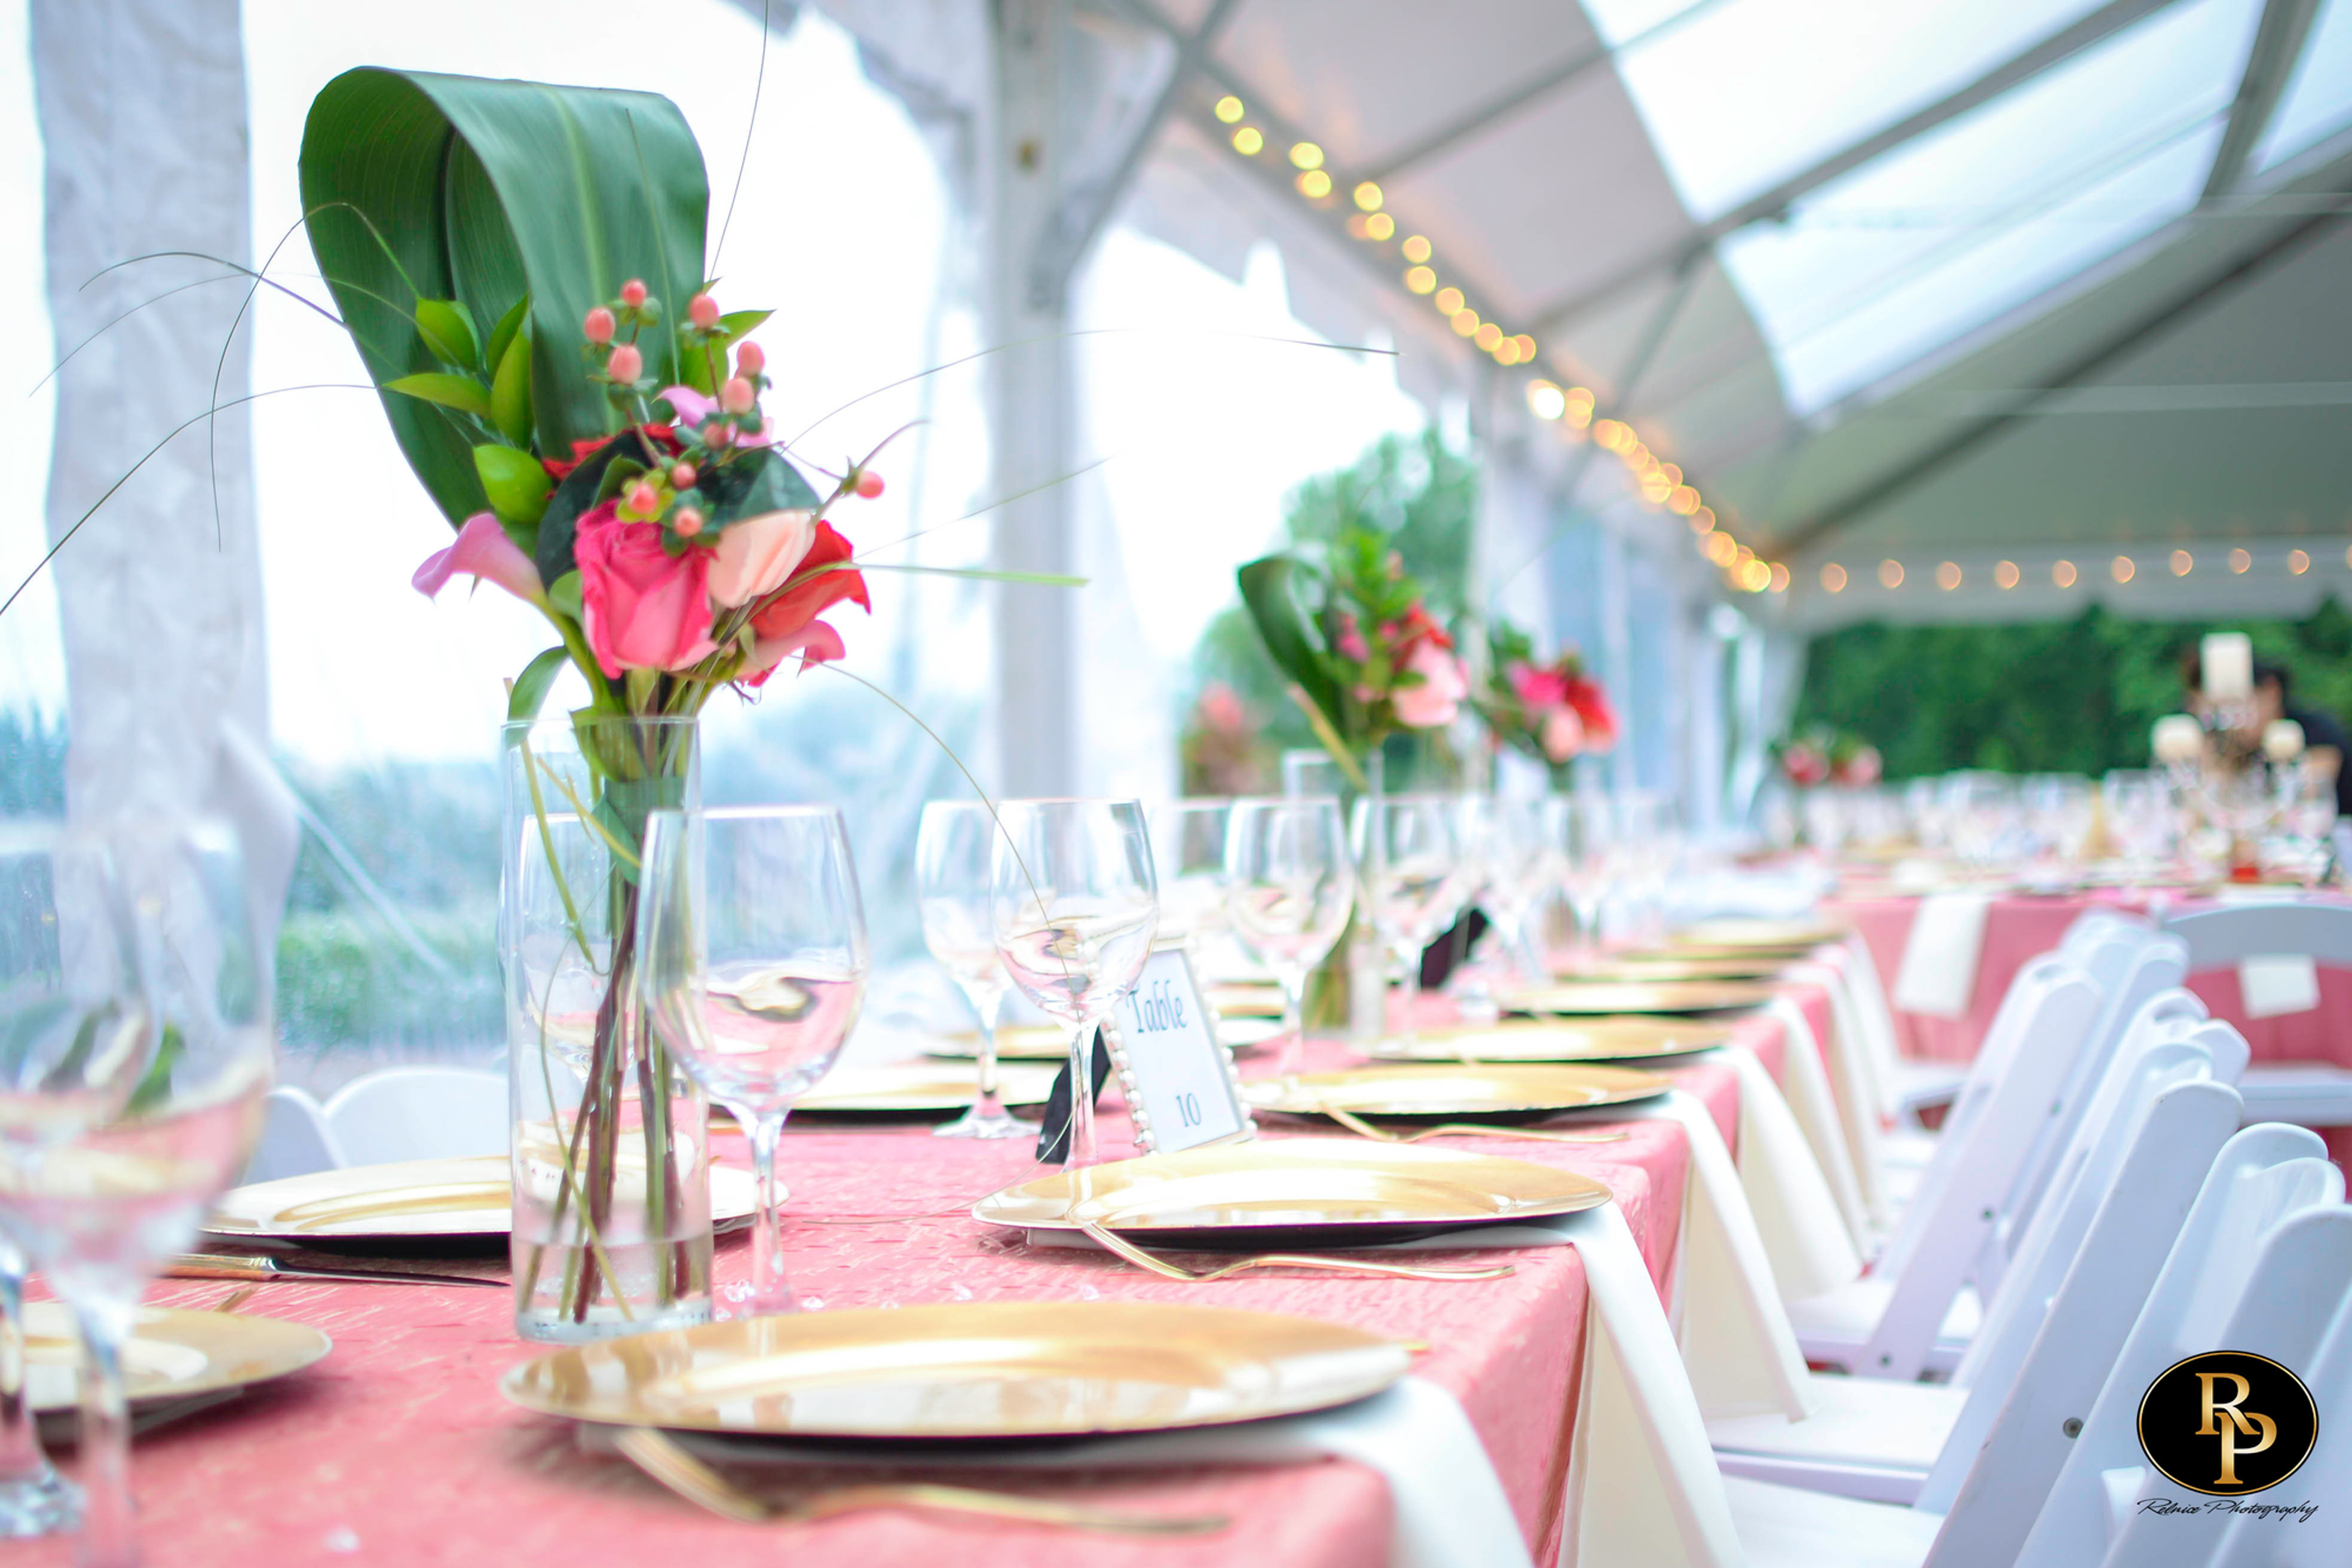 Event: Party, Baby Shower, etc